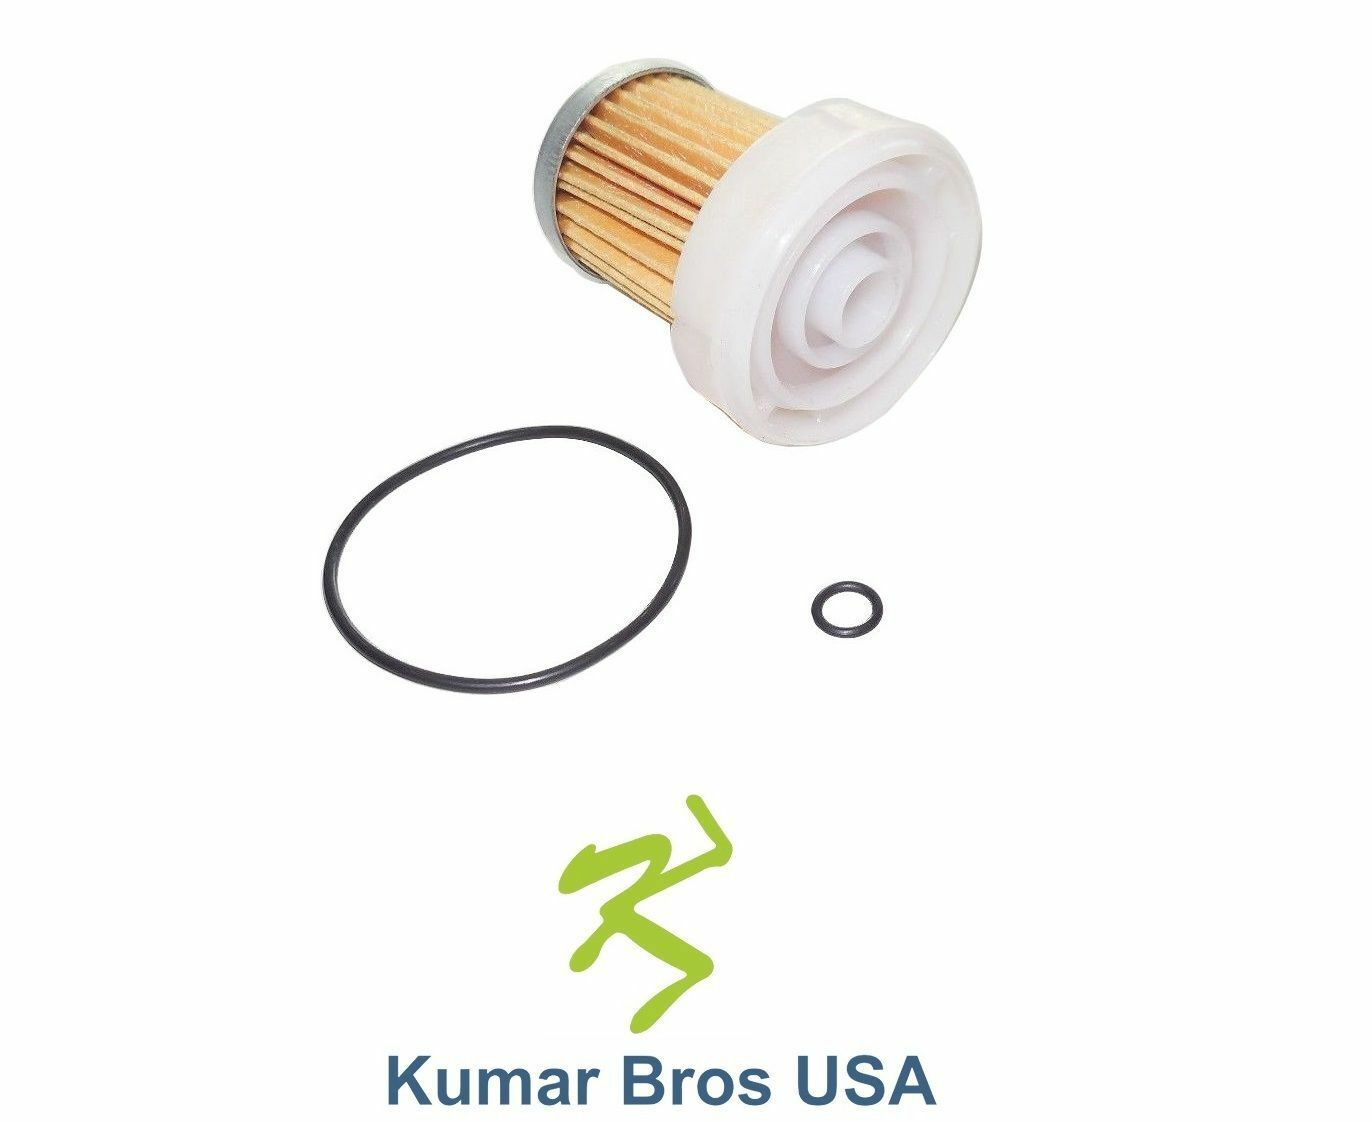 New Kubota Fuel Filter With O Rings L2501 L2800 L3200 L3400 899 91 F150 1 Of 4free Shipping